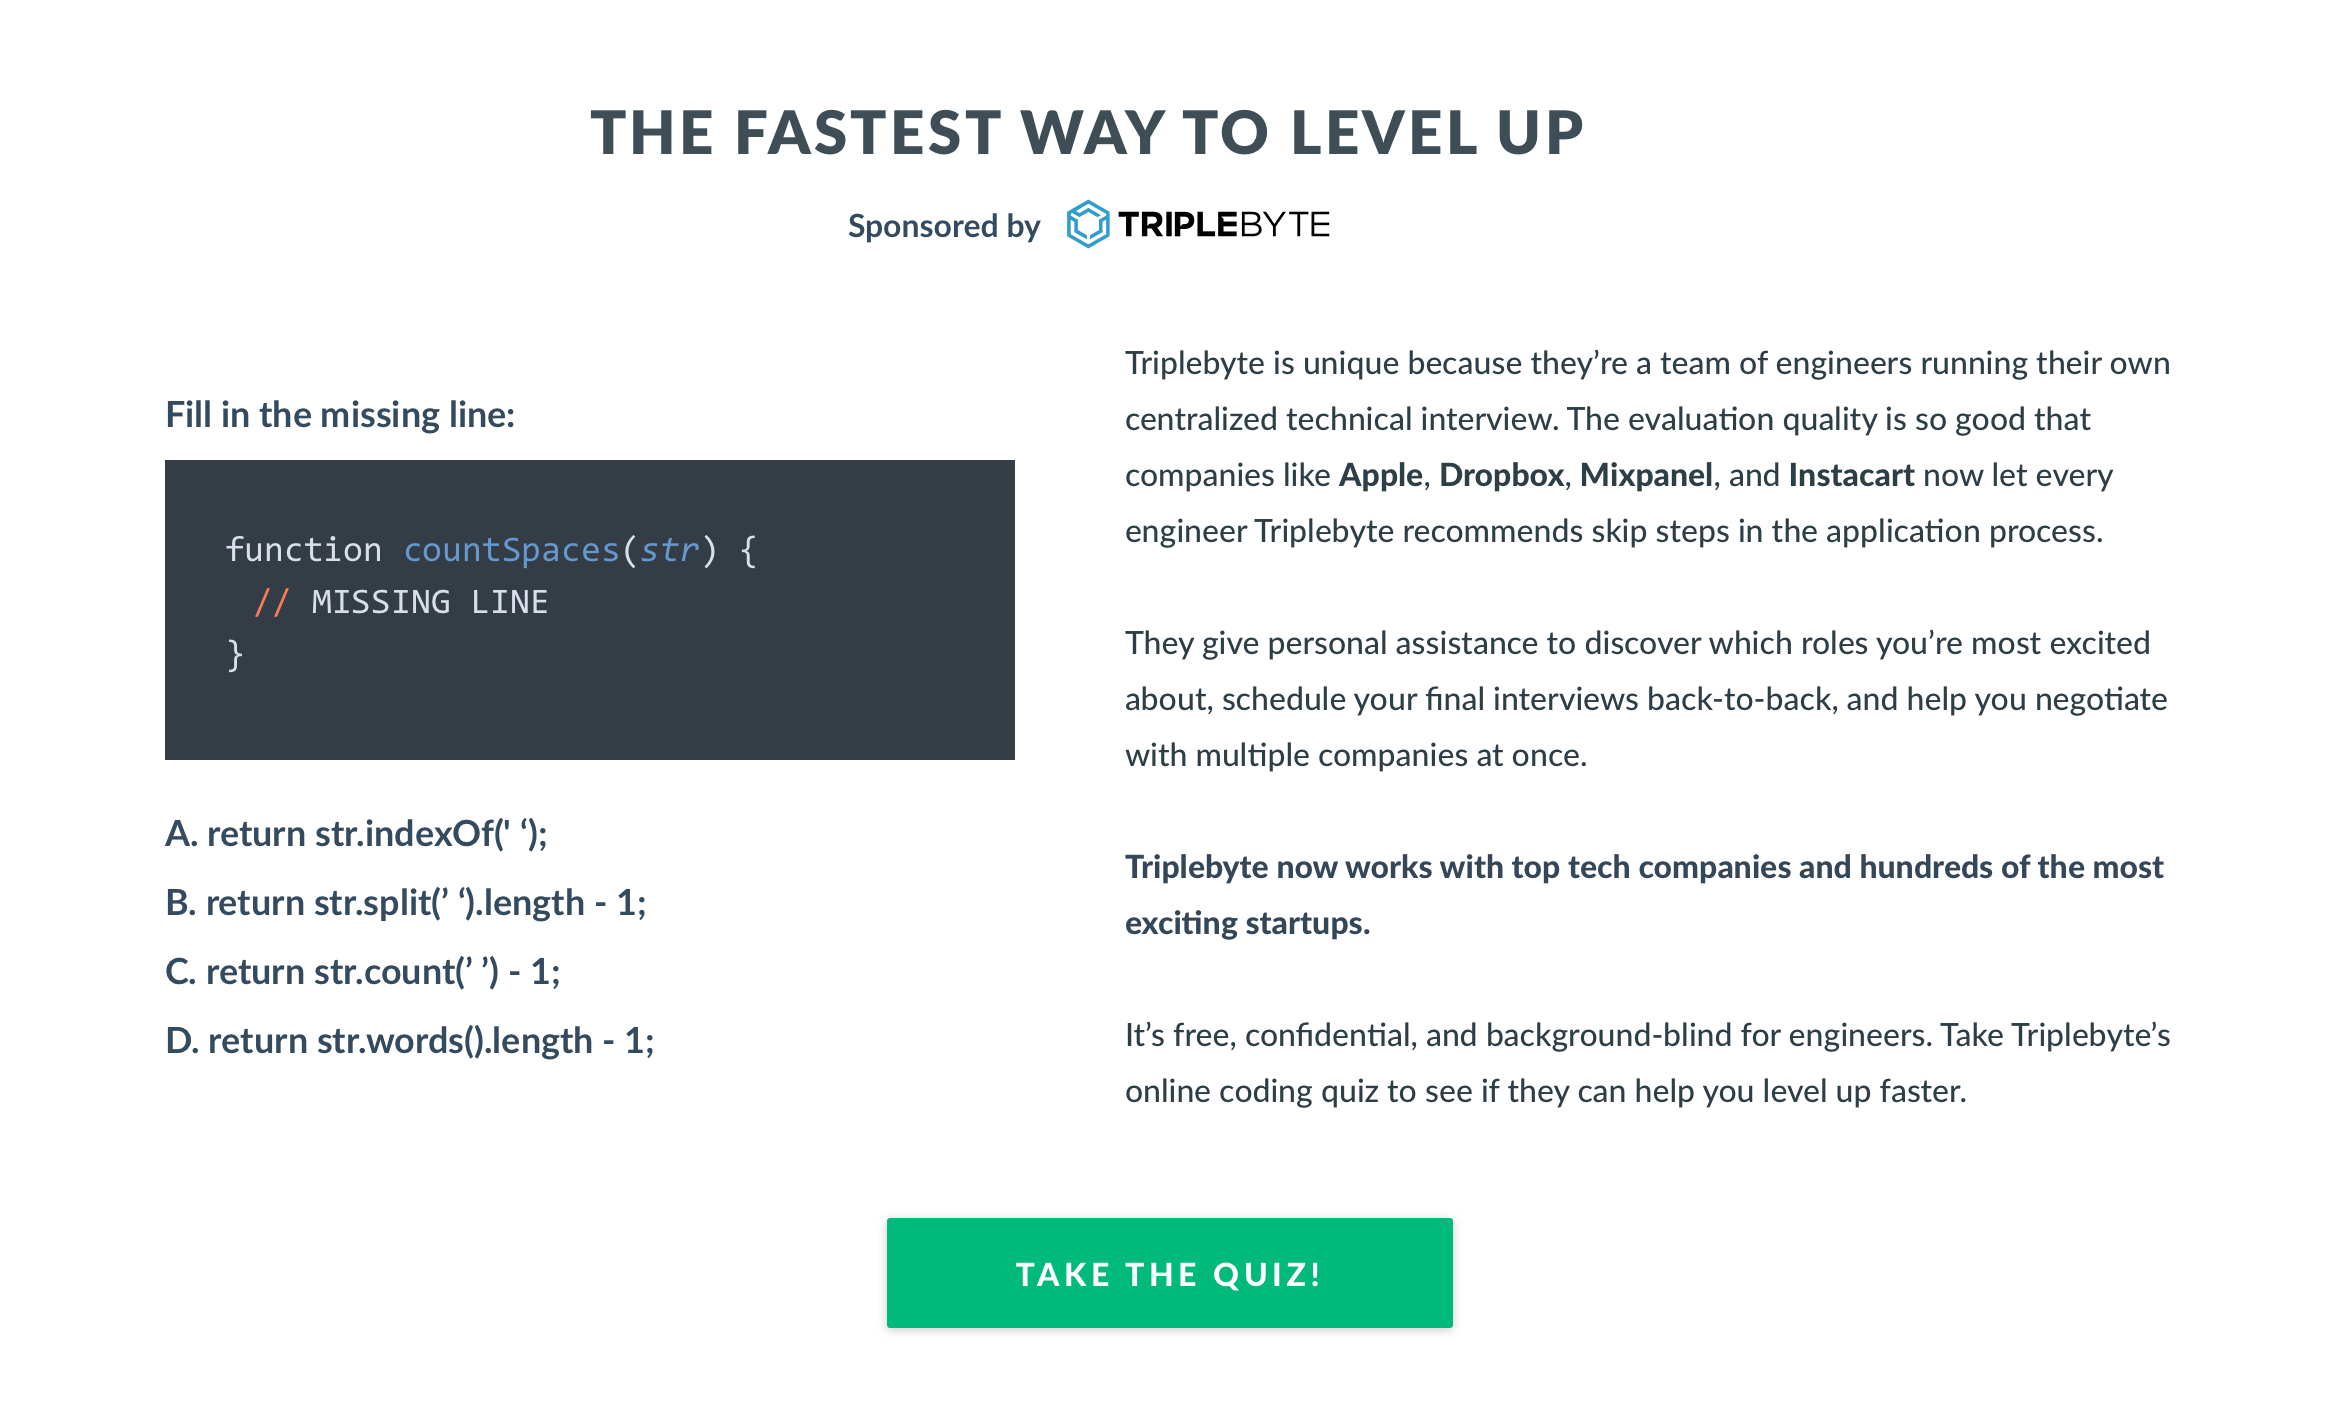 Triplebyte: The Fastest Way to Level Up